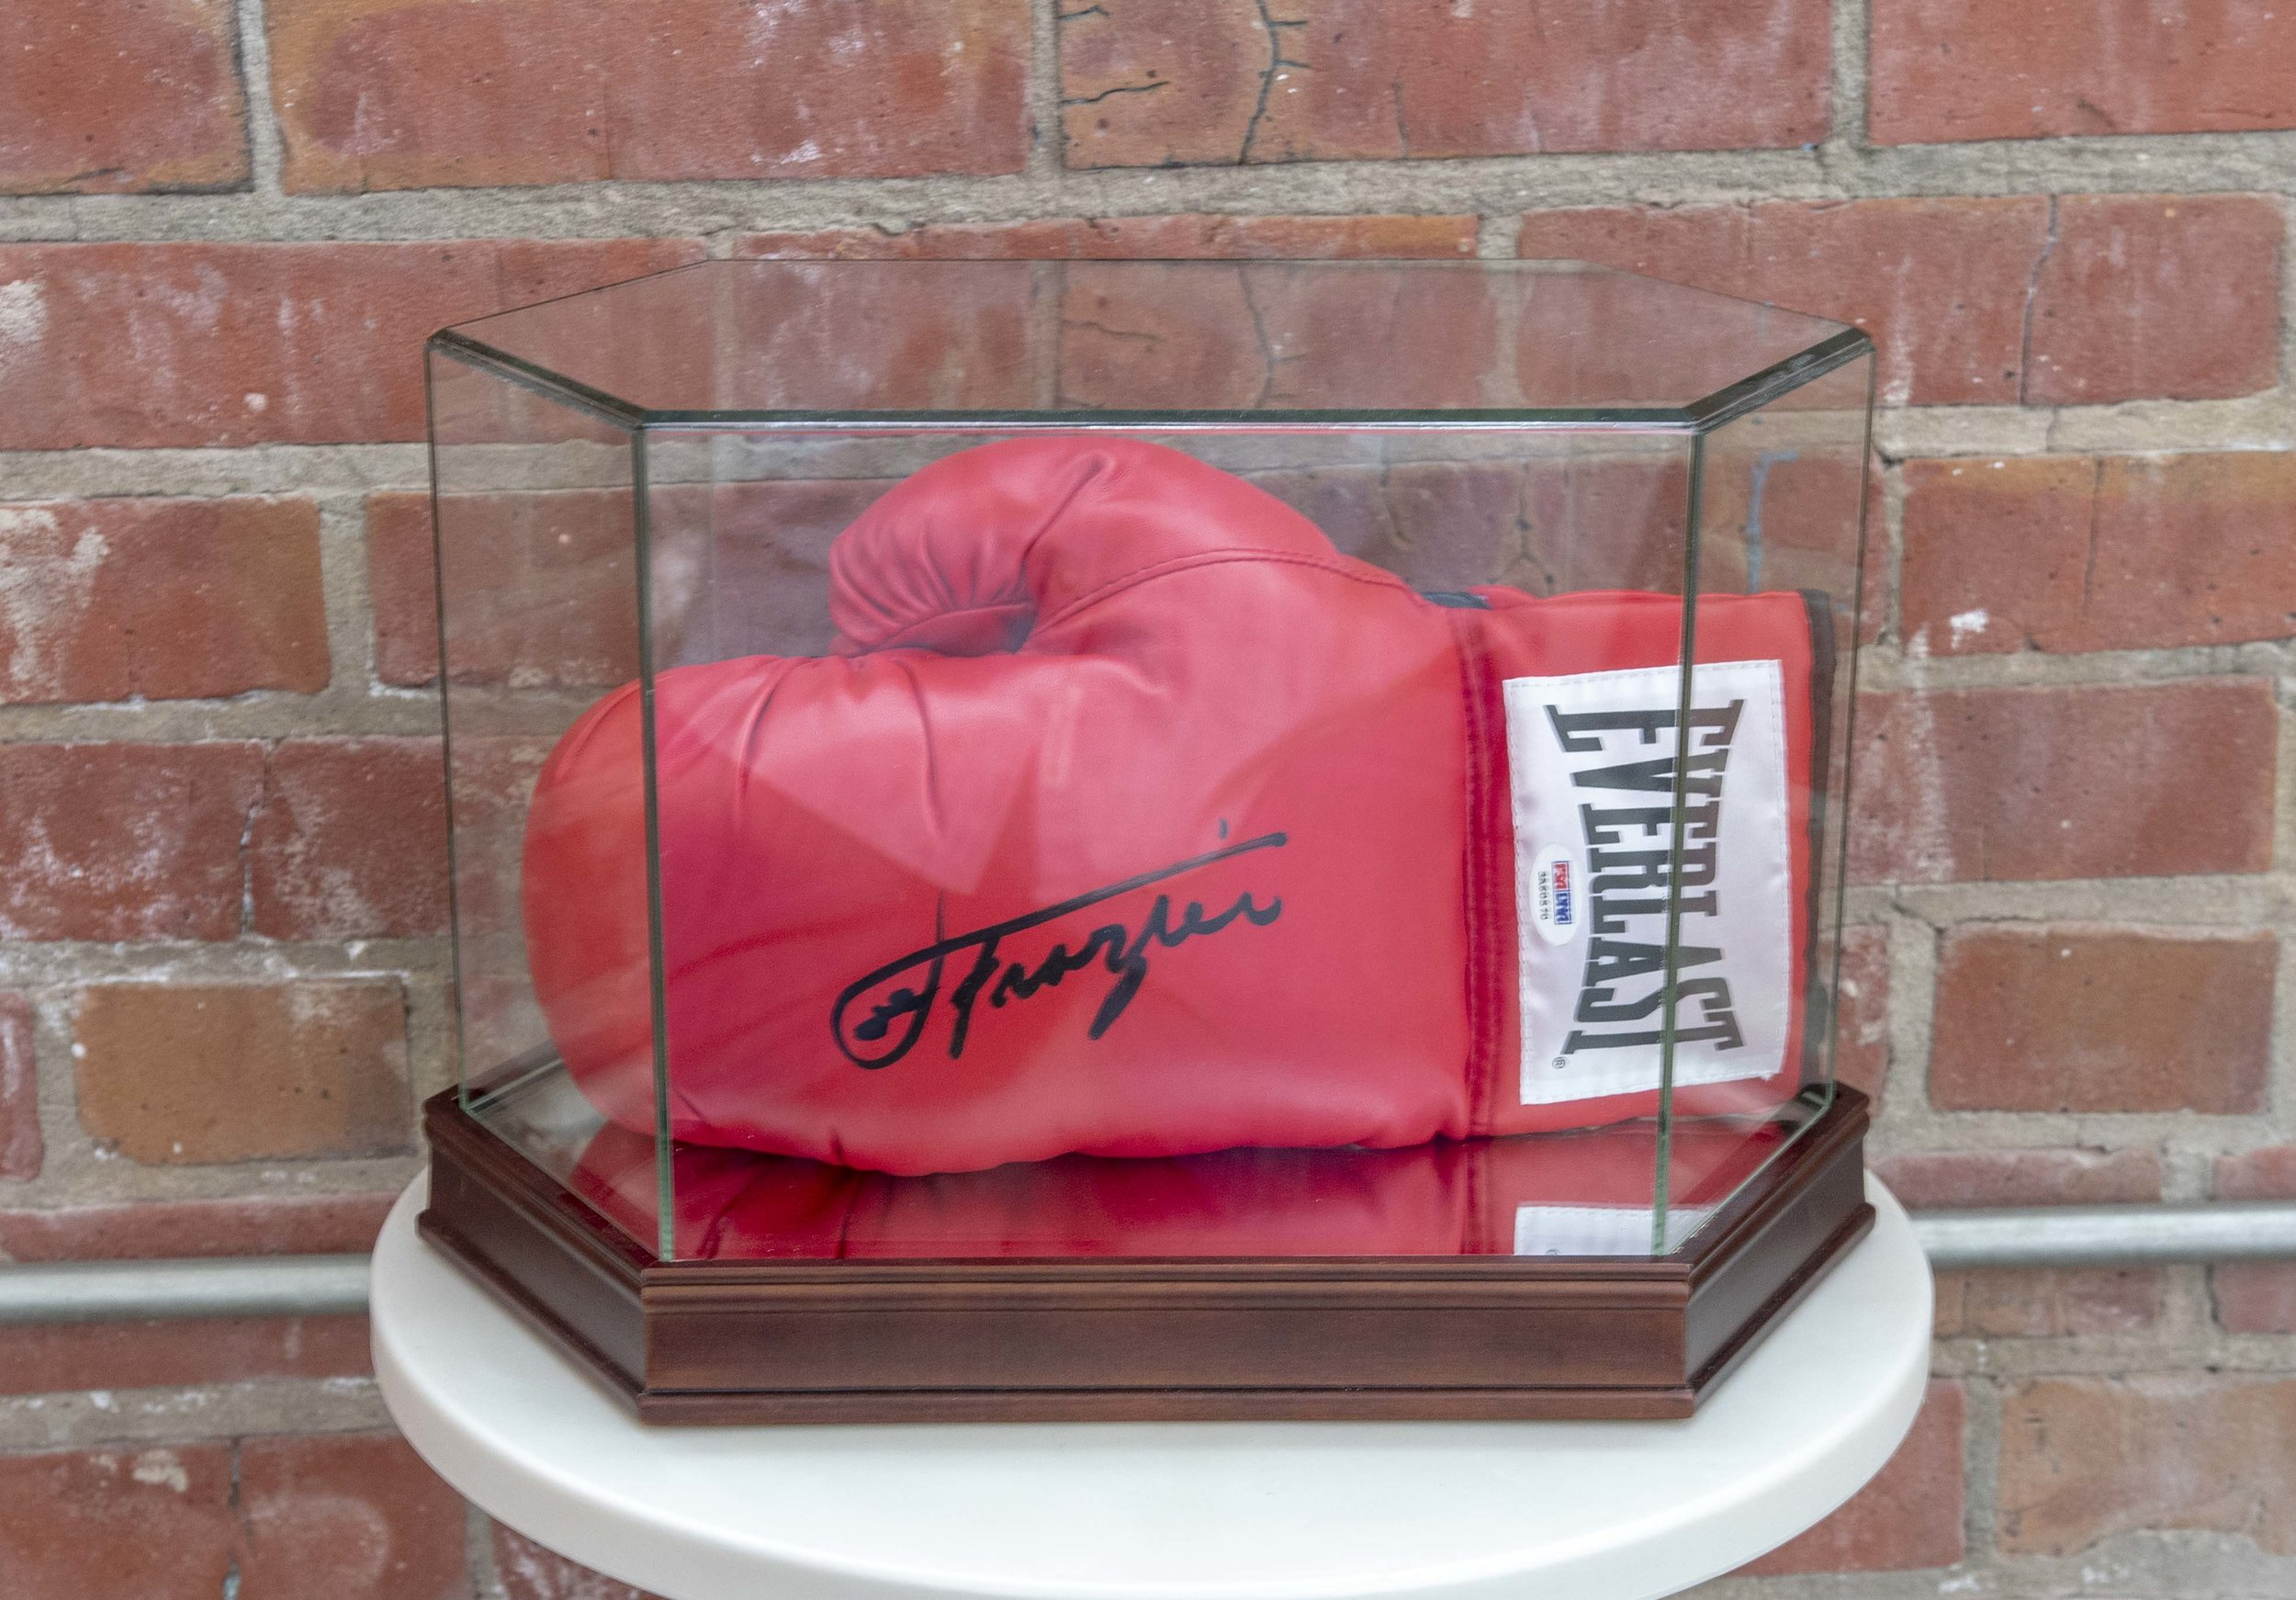 Joe Frazier Signed Boxing Glove